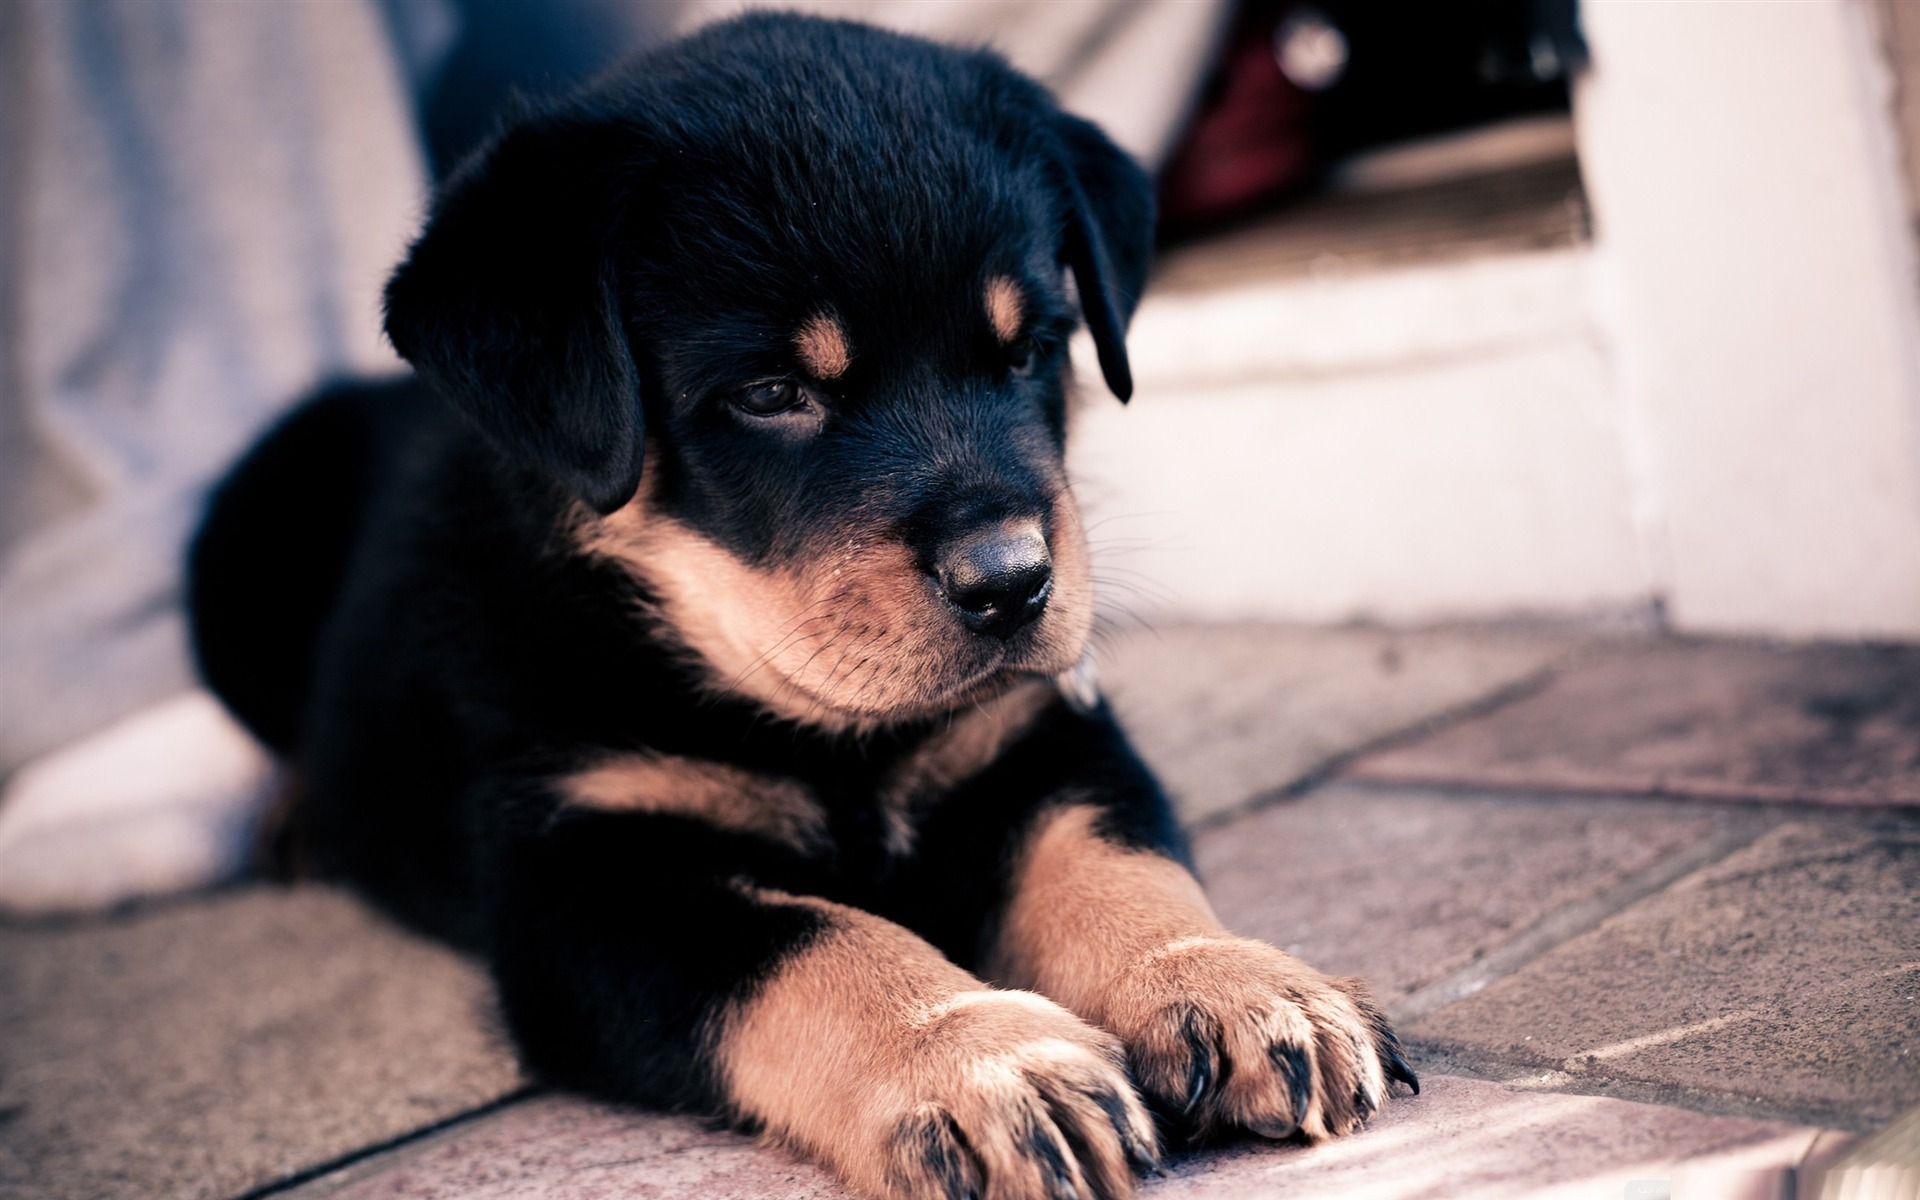 cute rottweiler puppy-dog animal desktop wallpaper ...